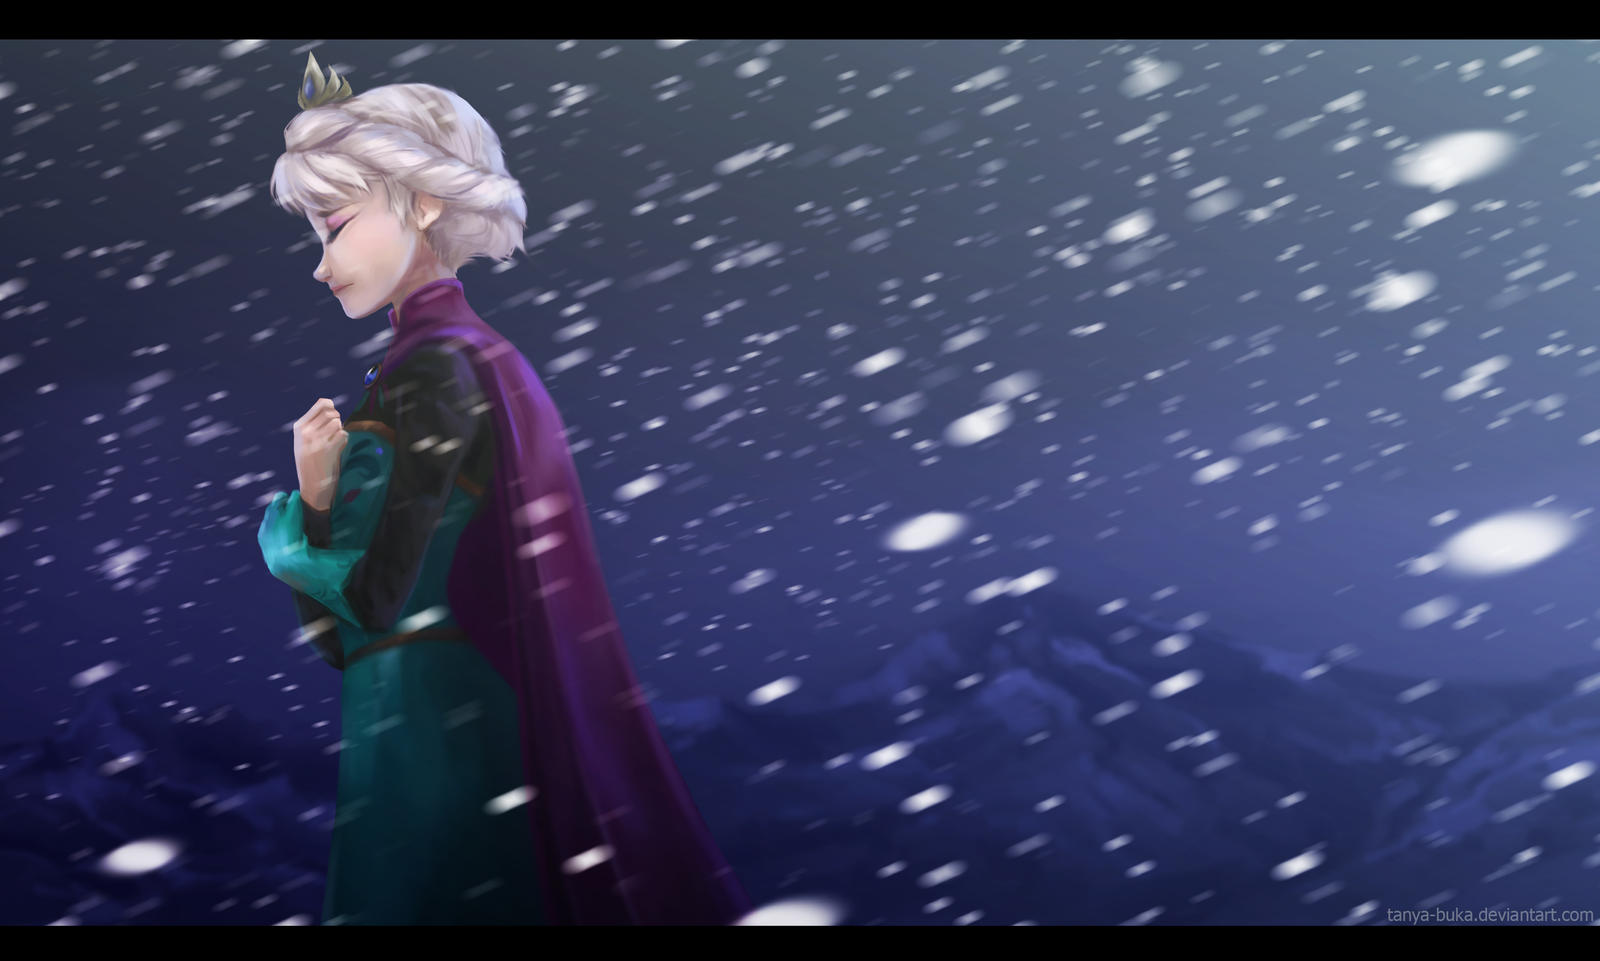 Kingdom of isolation by tanya-buka